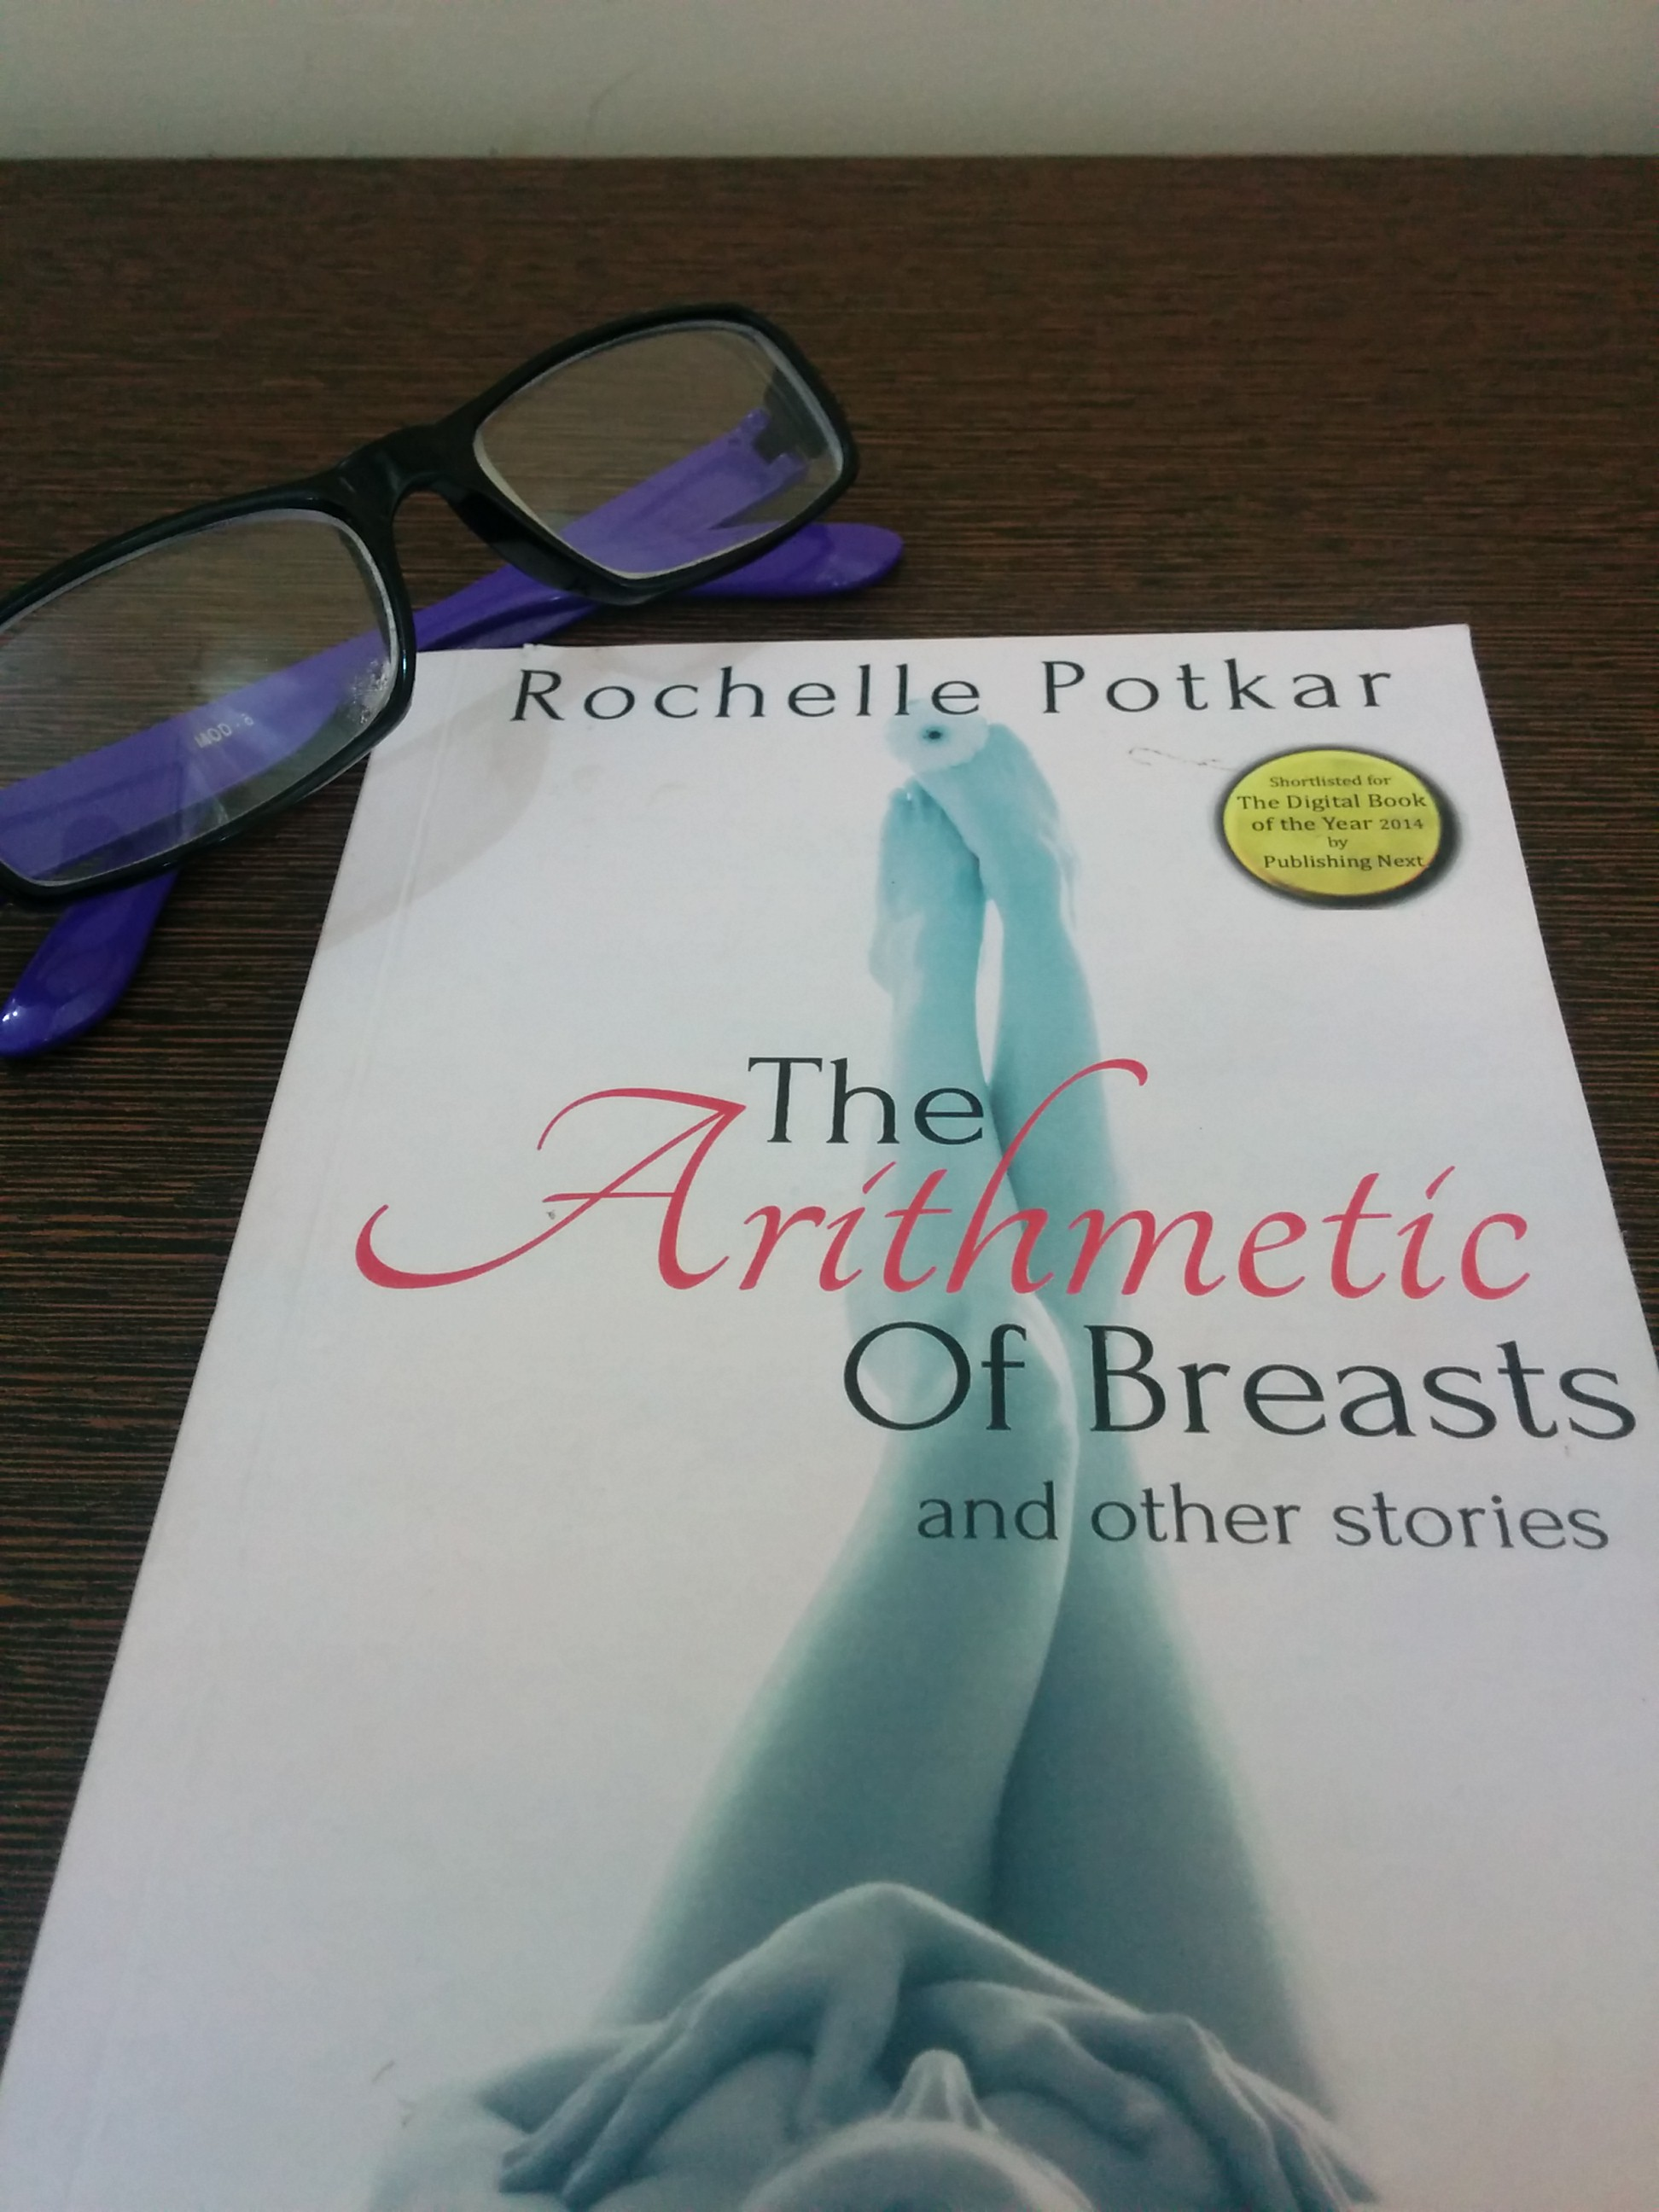 book review The Arithmetic of Breasts